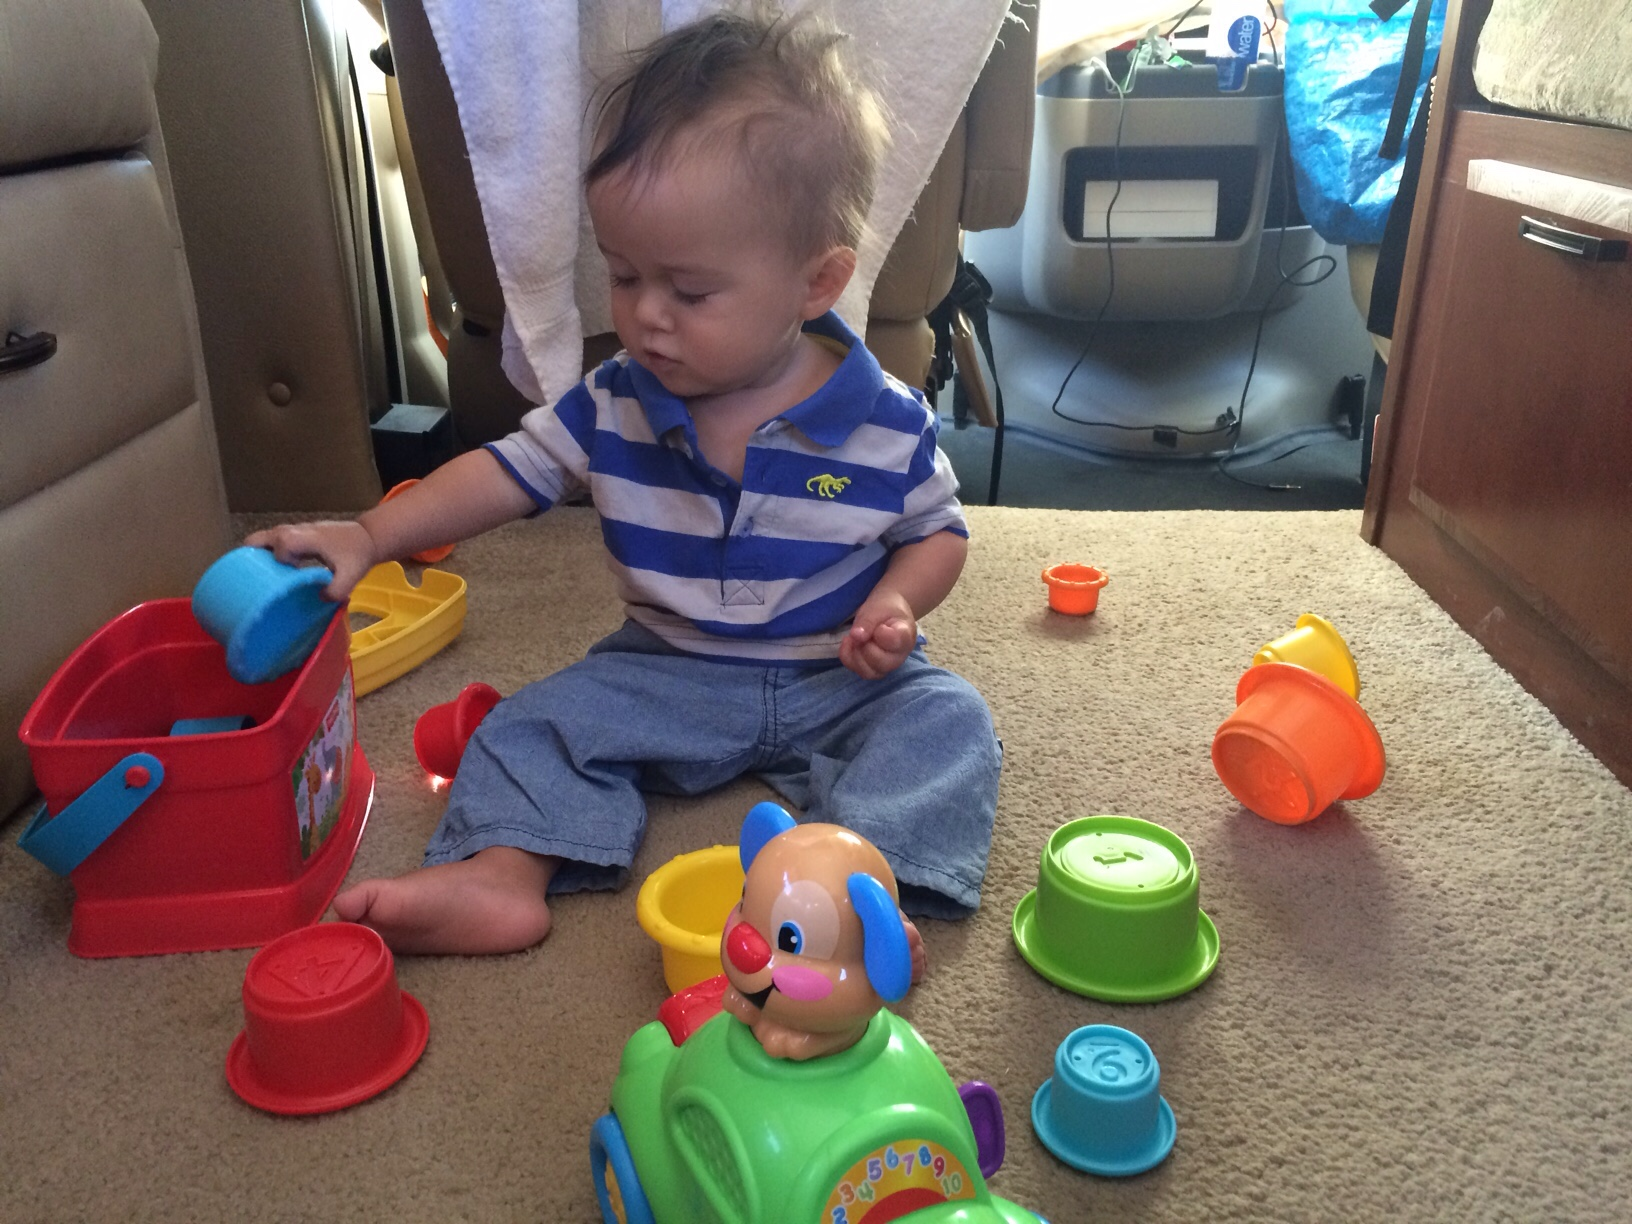 Baby boy o playing in RV with toys